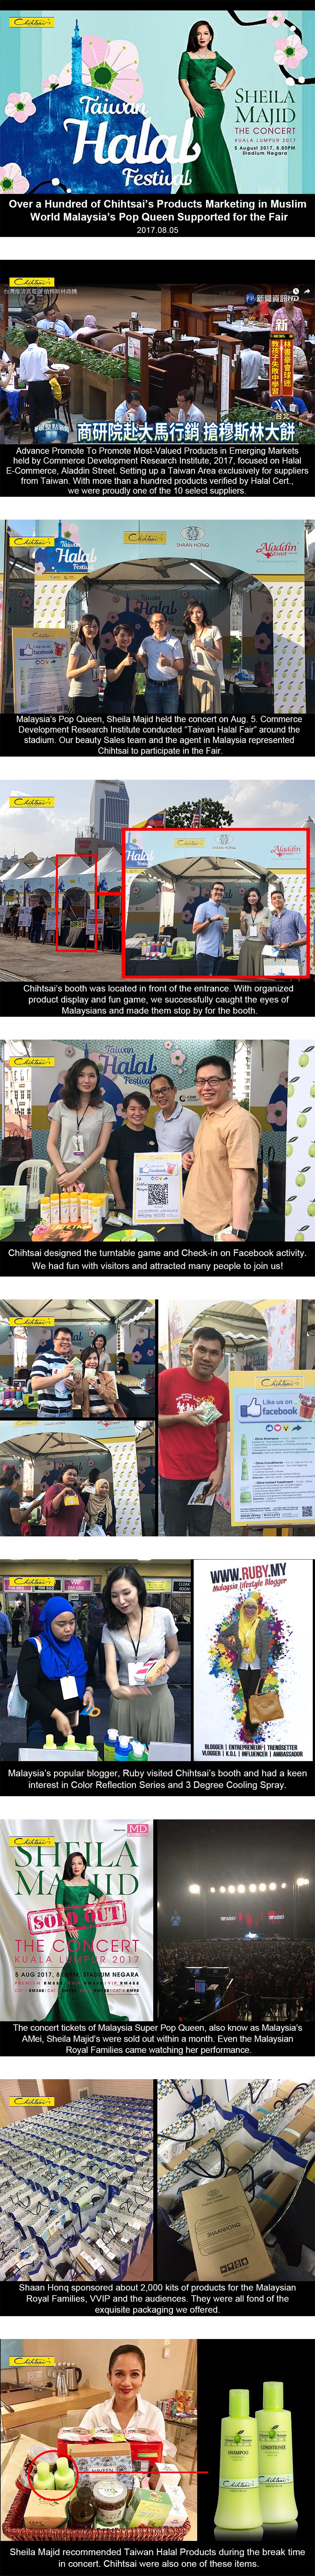 Over a Hundred of Chijtsai's Products Marking in World Malaysia's Pop Queen Supported for the Fair